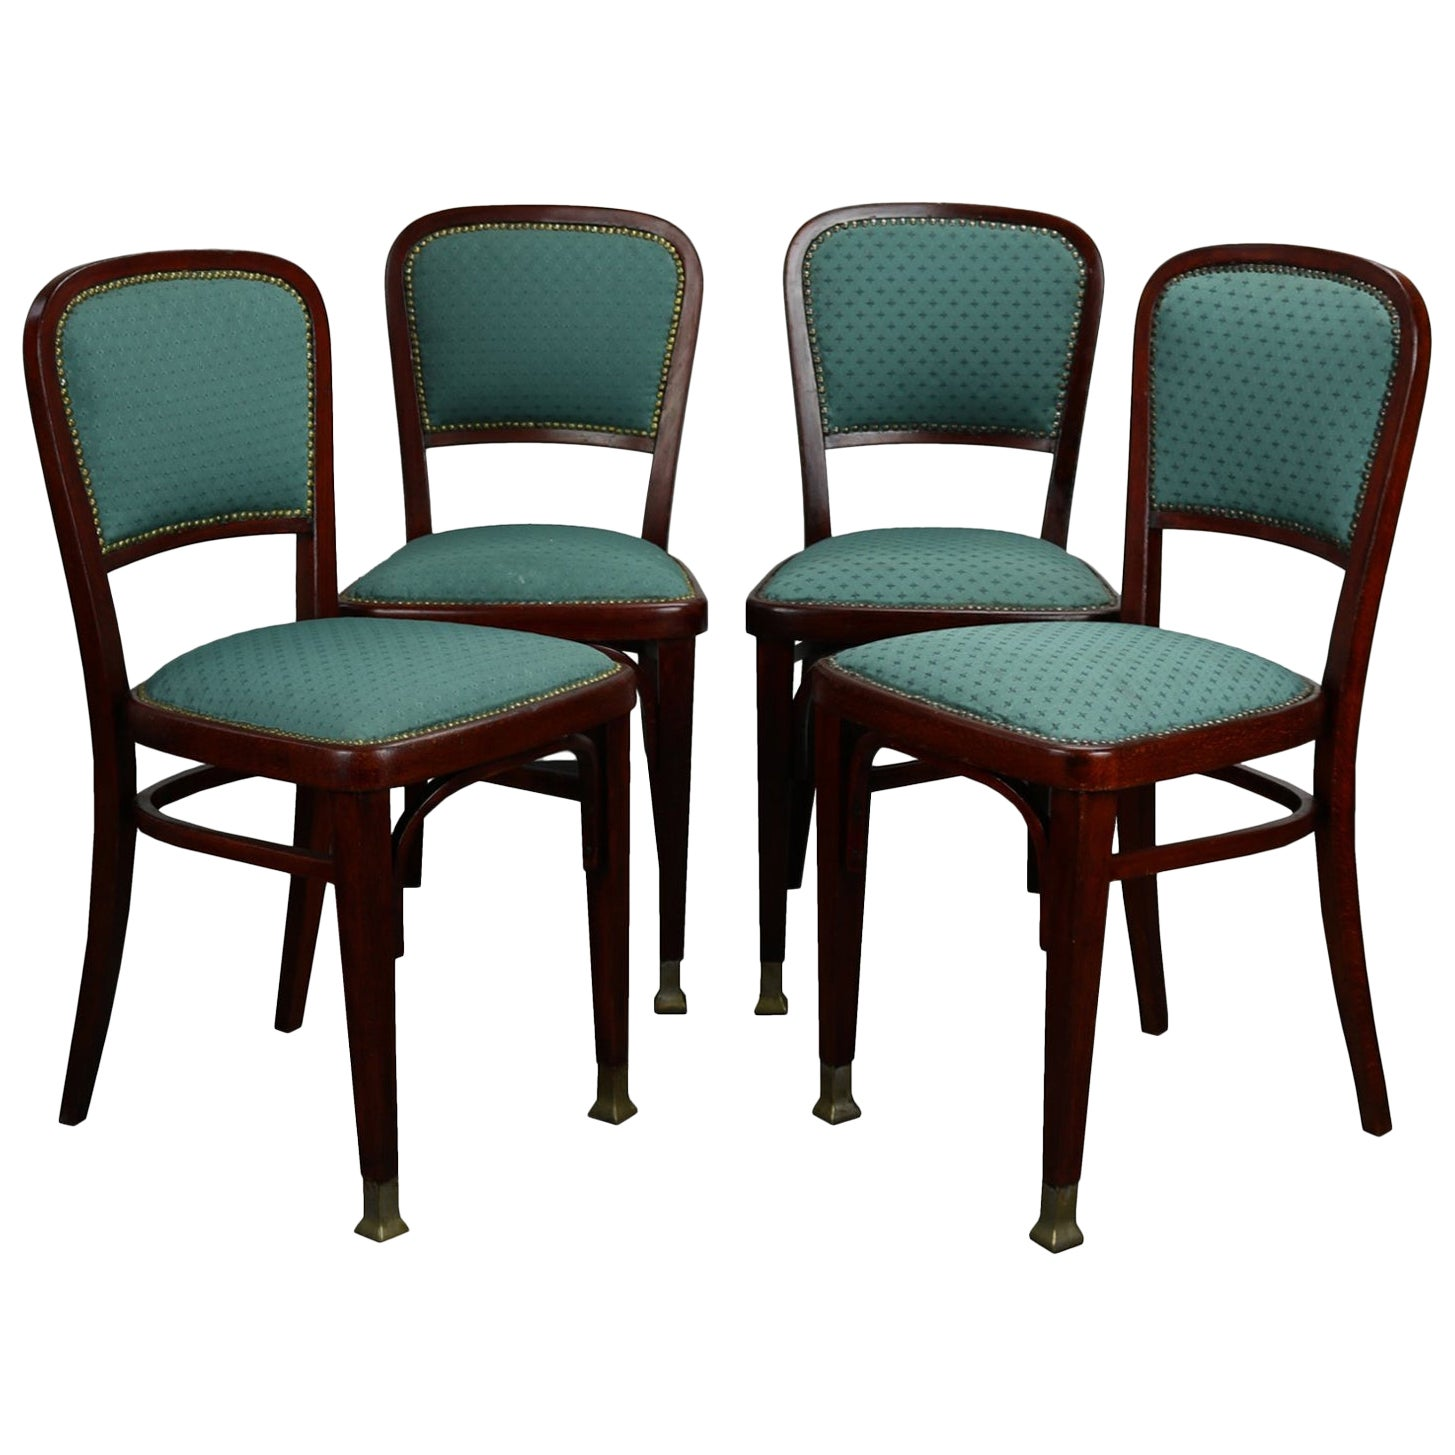 Set of Four Chairs by Marcel Kammerer for Thonet, circa 1910